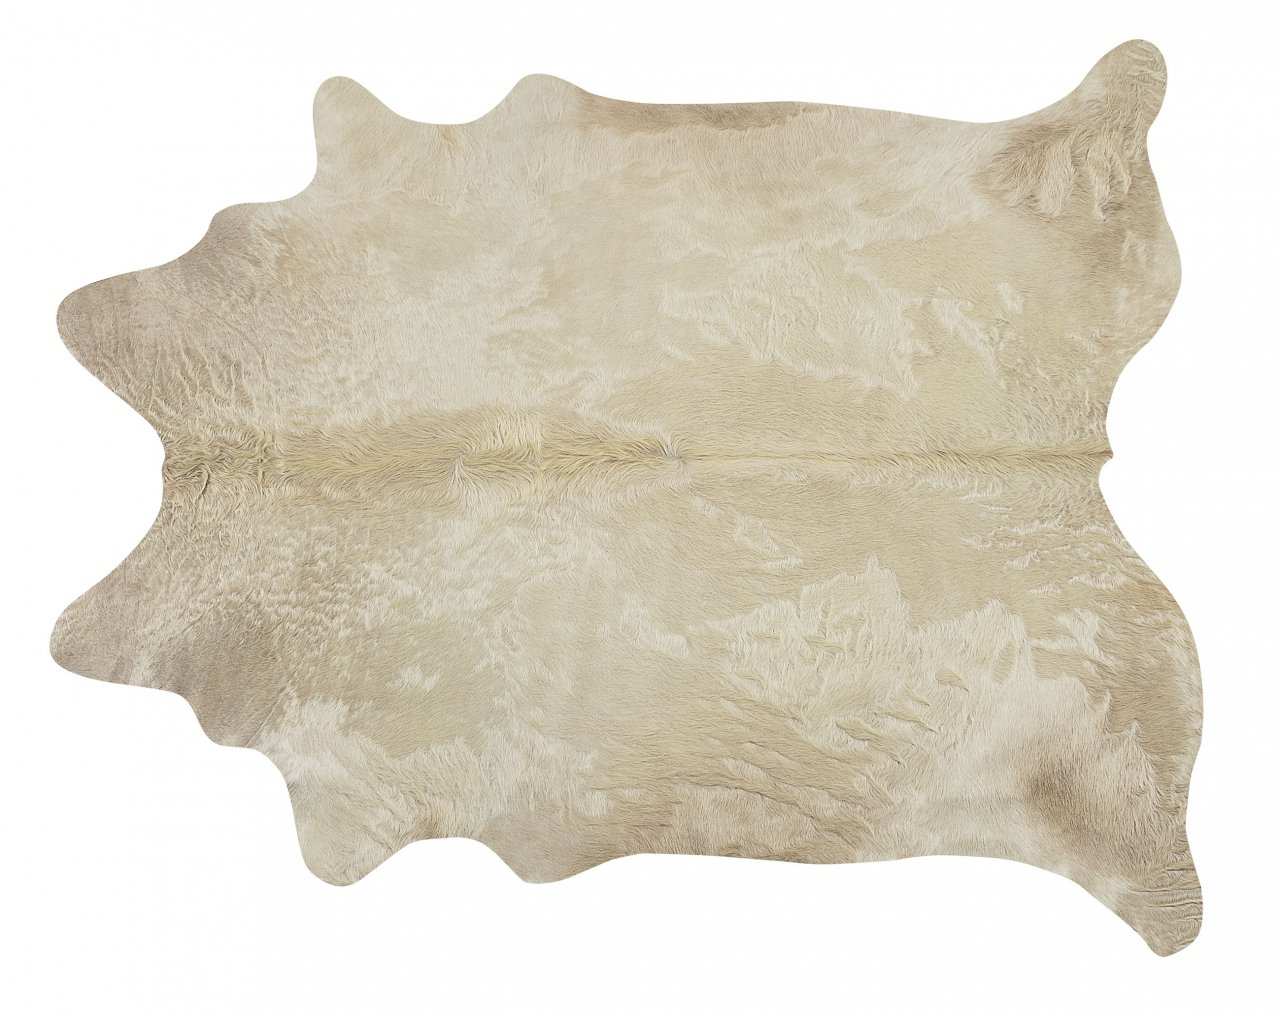 Champagne Brazilian Cowhide Rug Area Rugs - Size LARGE